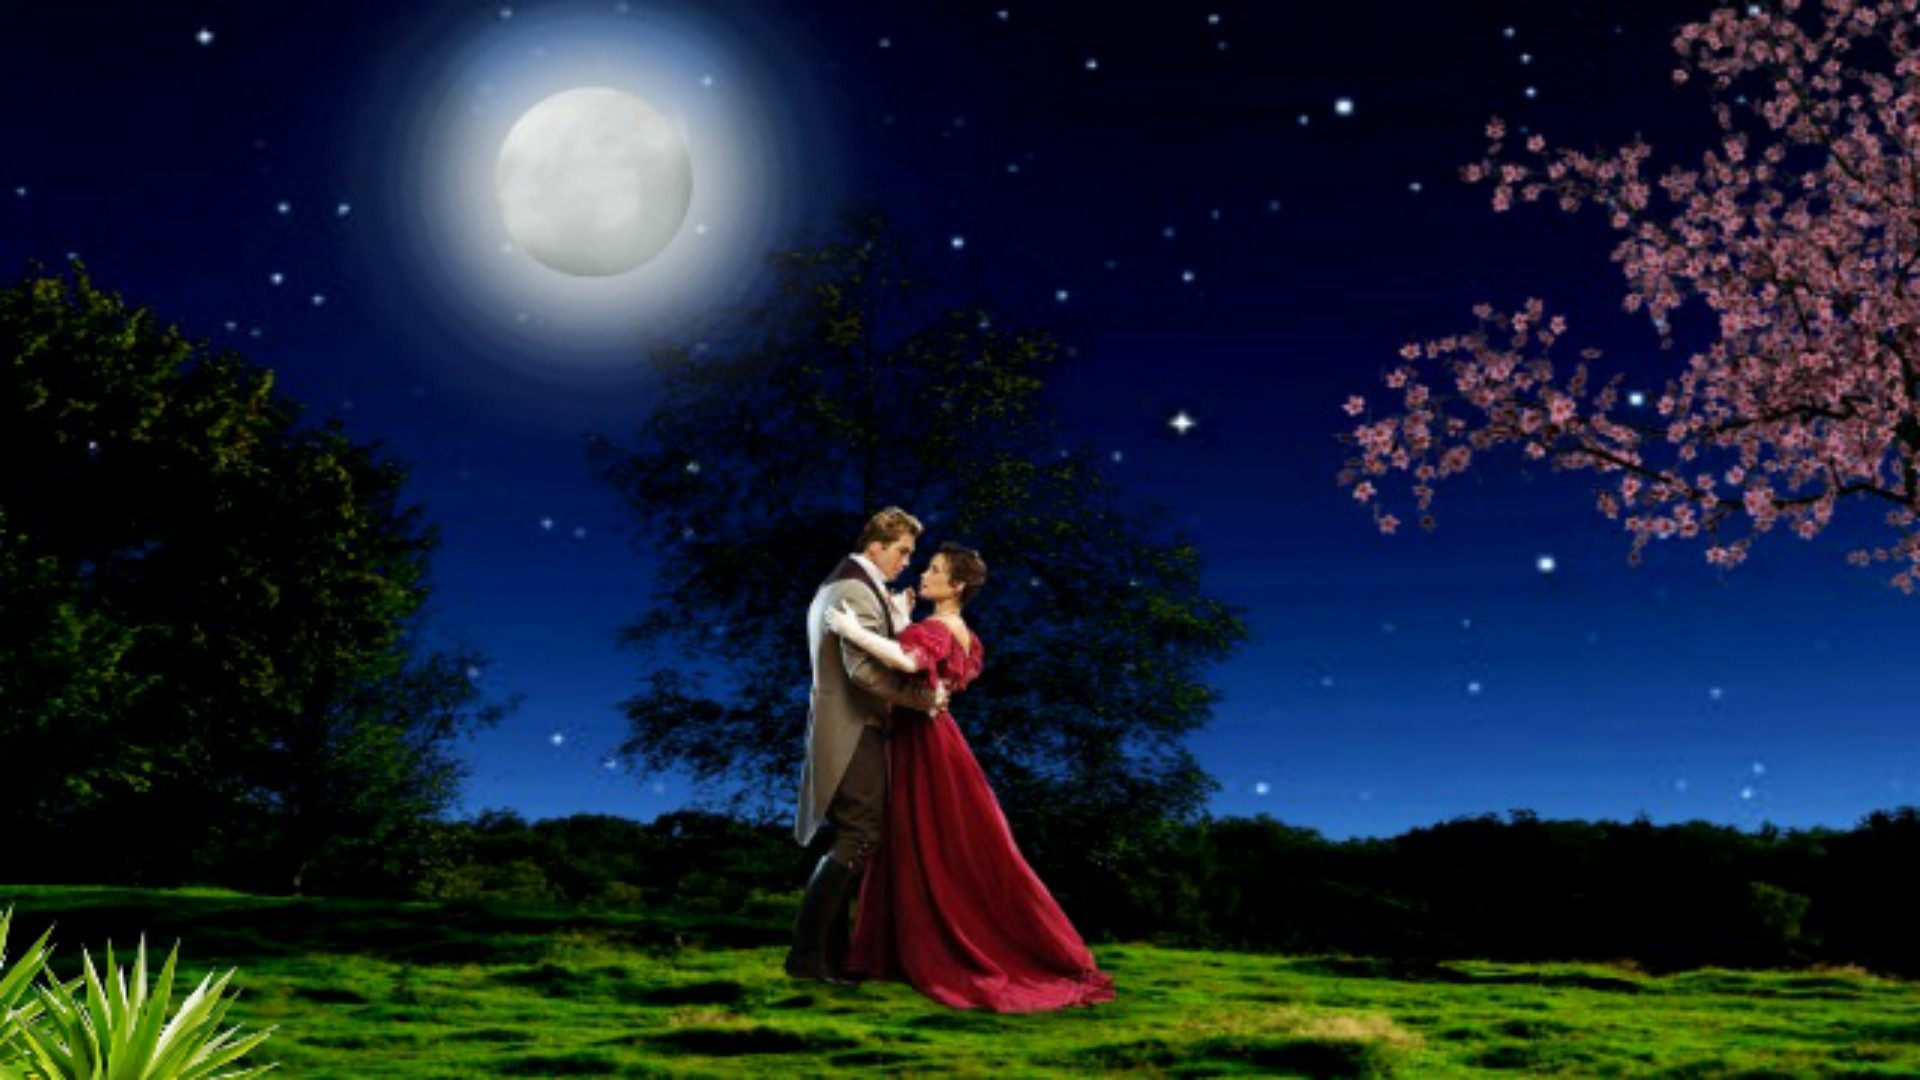 Love Couple With Moon Hd Wallpaper For Mobile: Moon And Stars Desktop Wallpaper (63+ Images